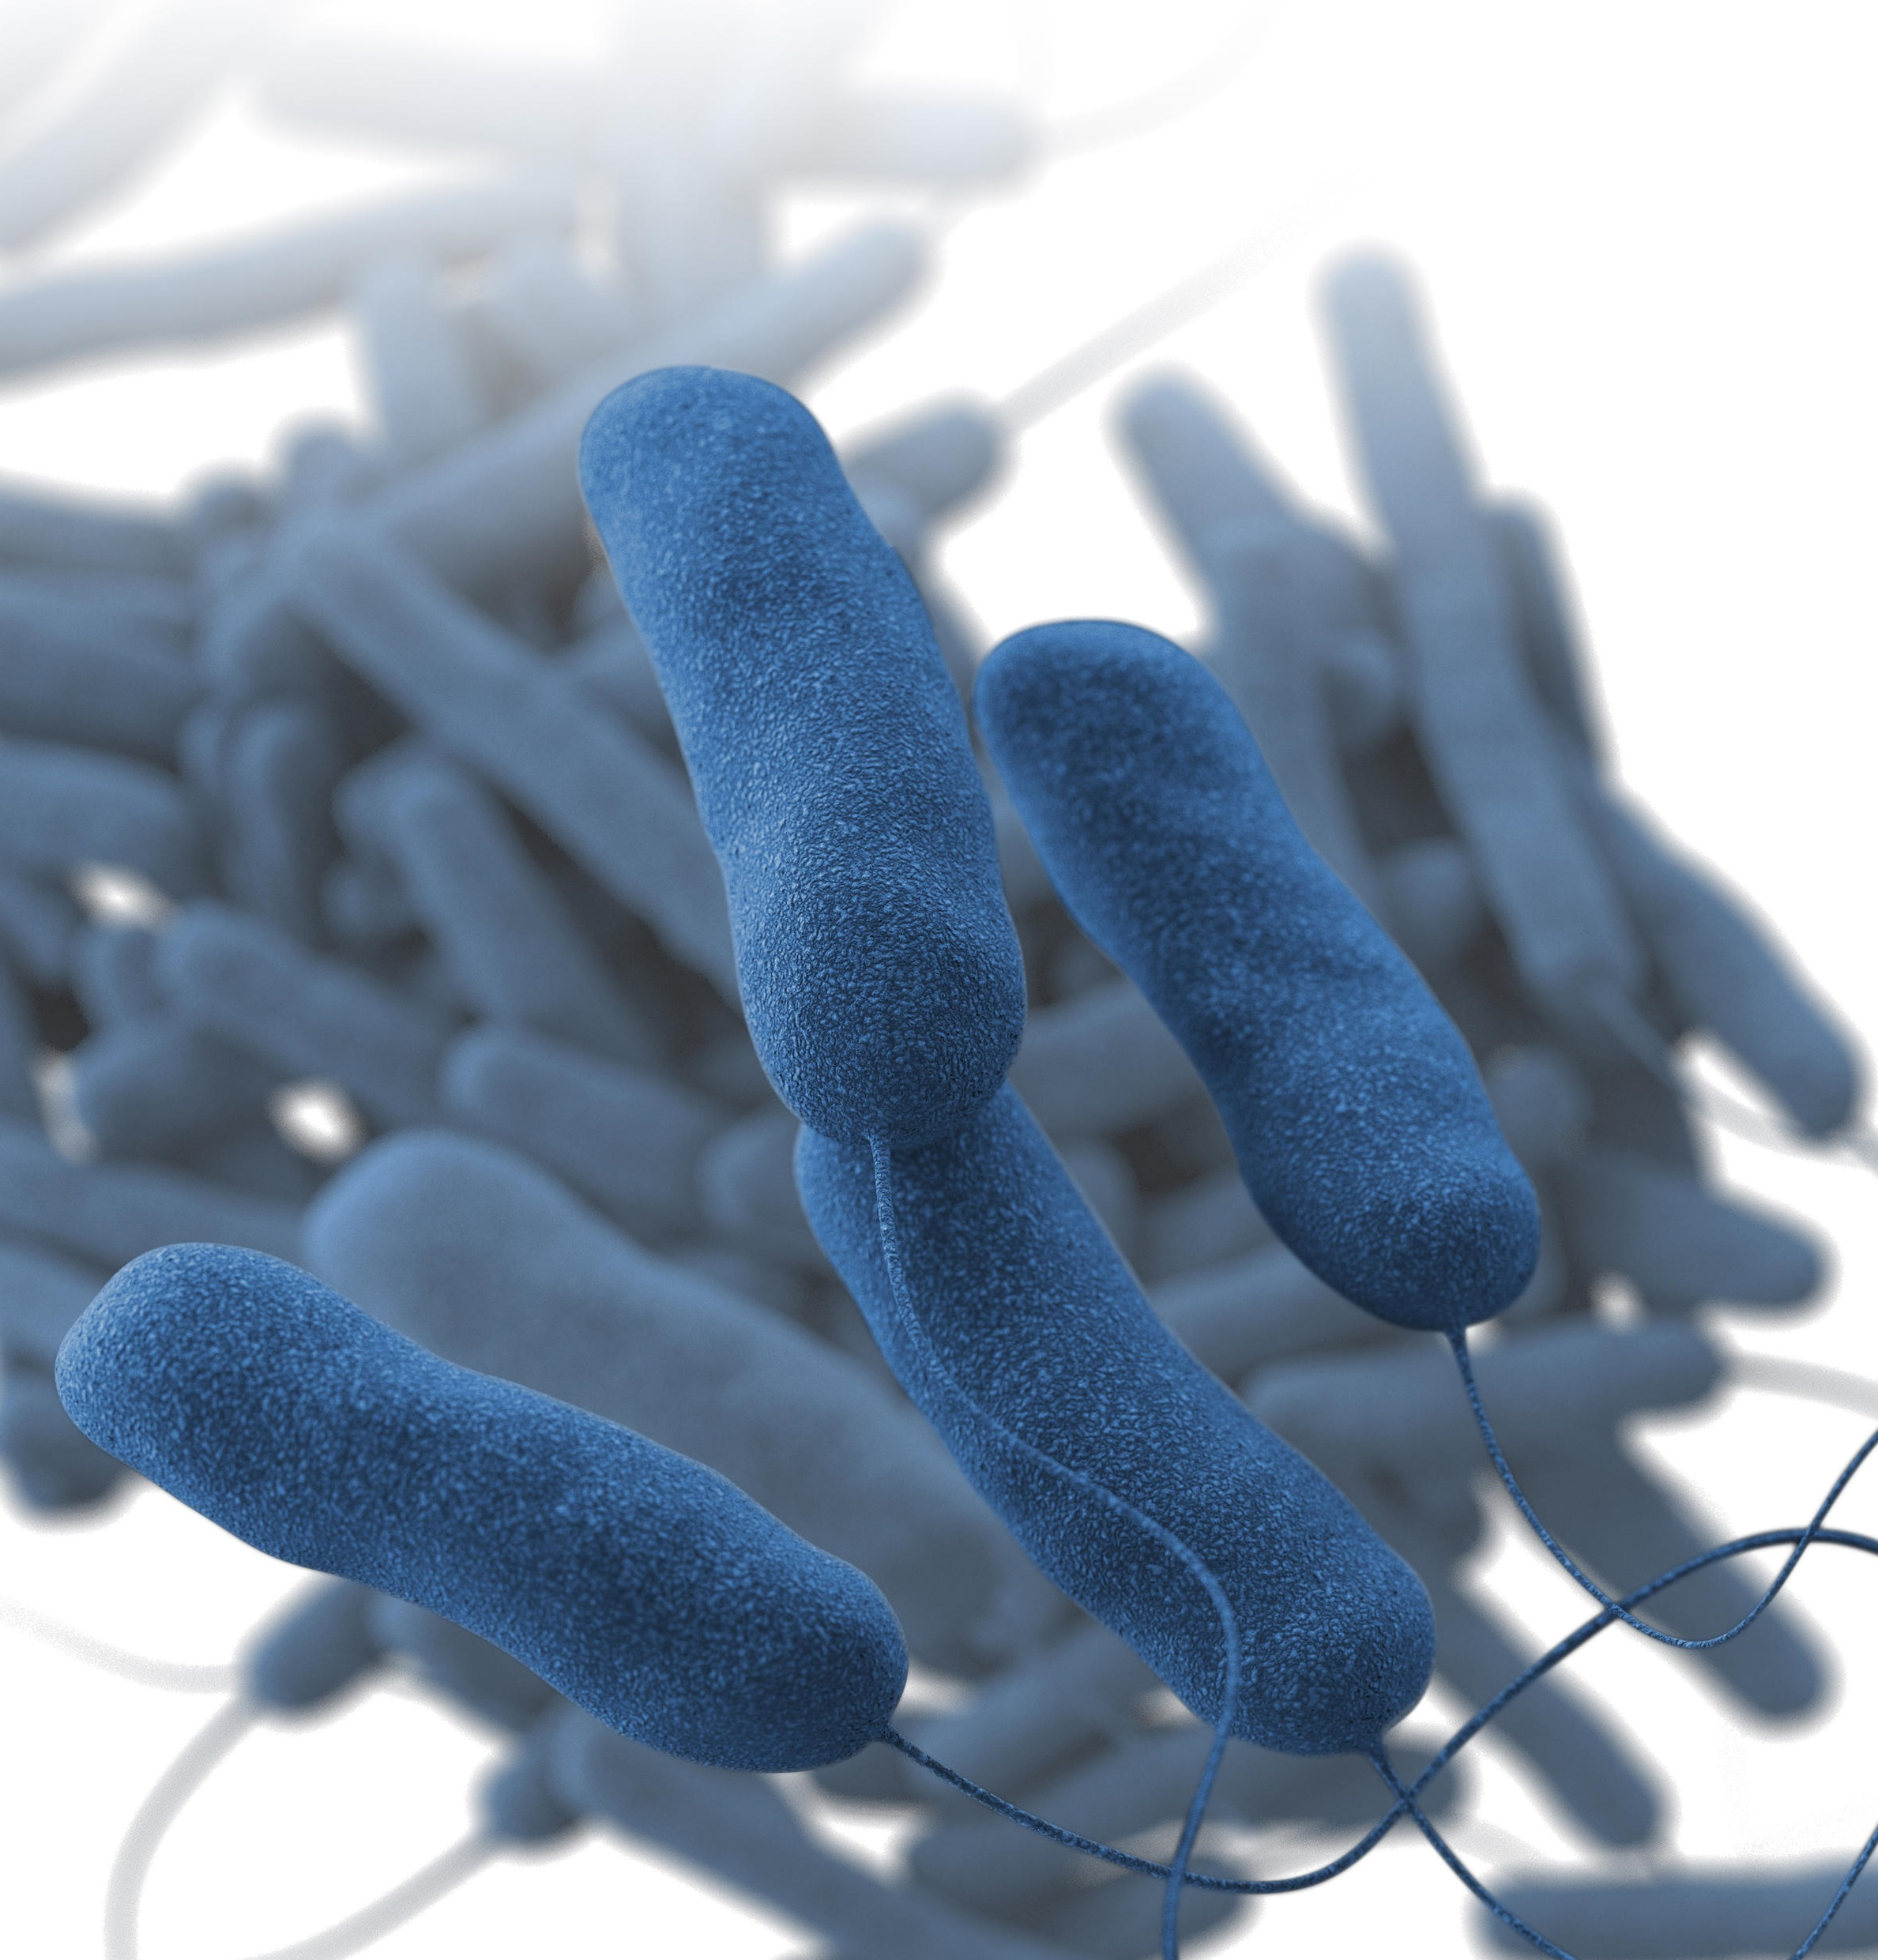 EPA to Host Free January Webinar on Legionella Management and Treatment